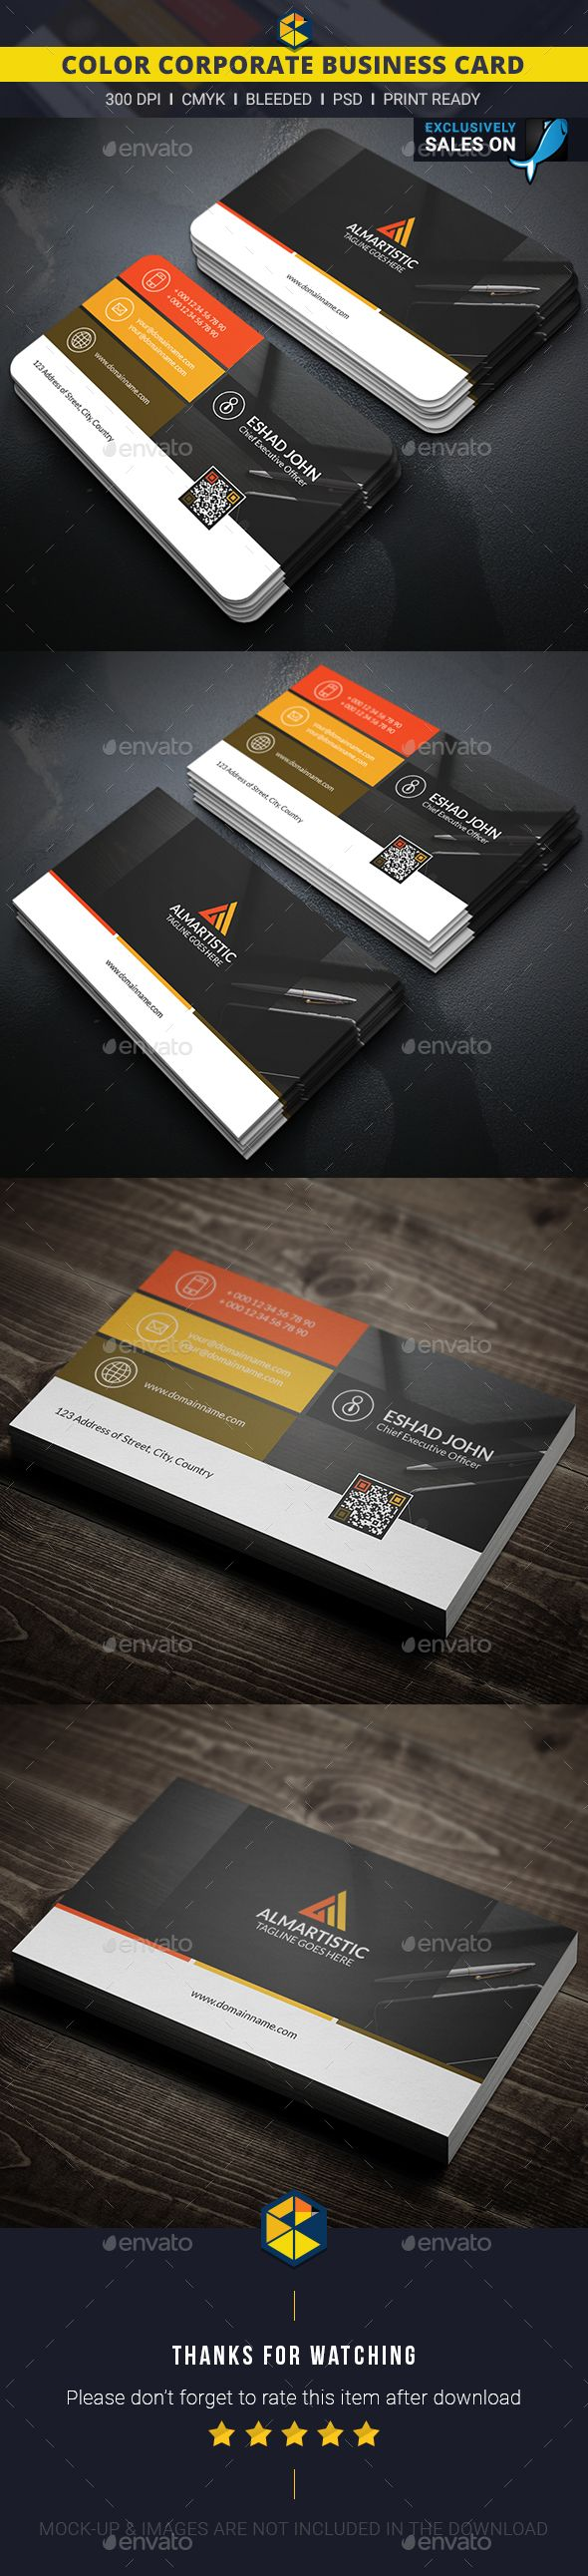 Color Corporate Business Card Template PSD #design Download: http://graphicriver.net/item/color-corporate-business-card/13416818?ref=ksioks